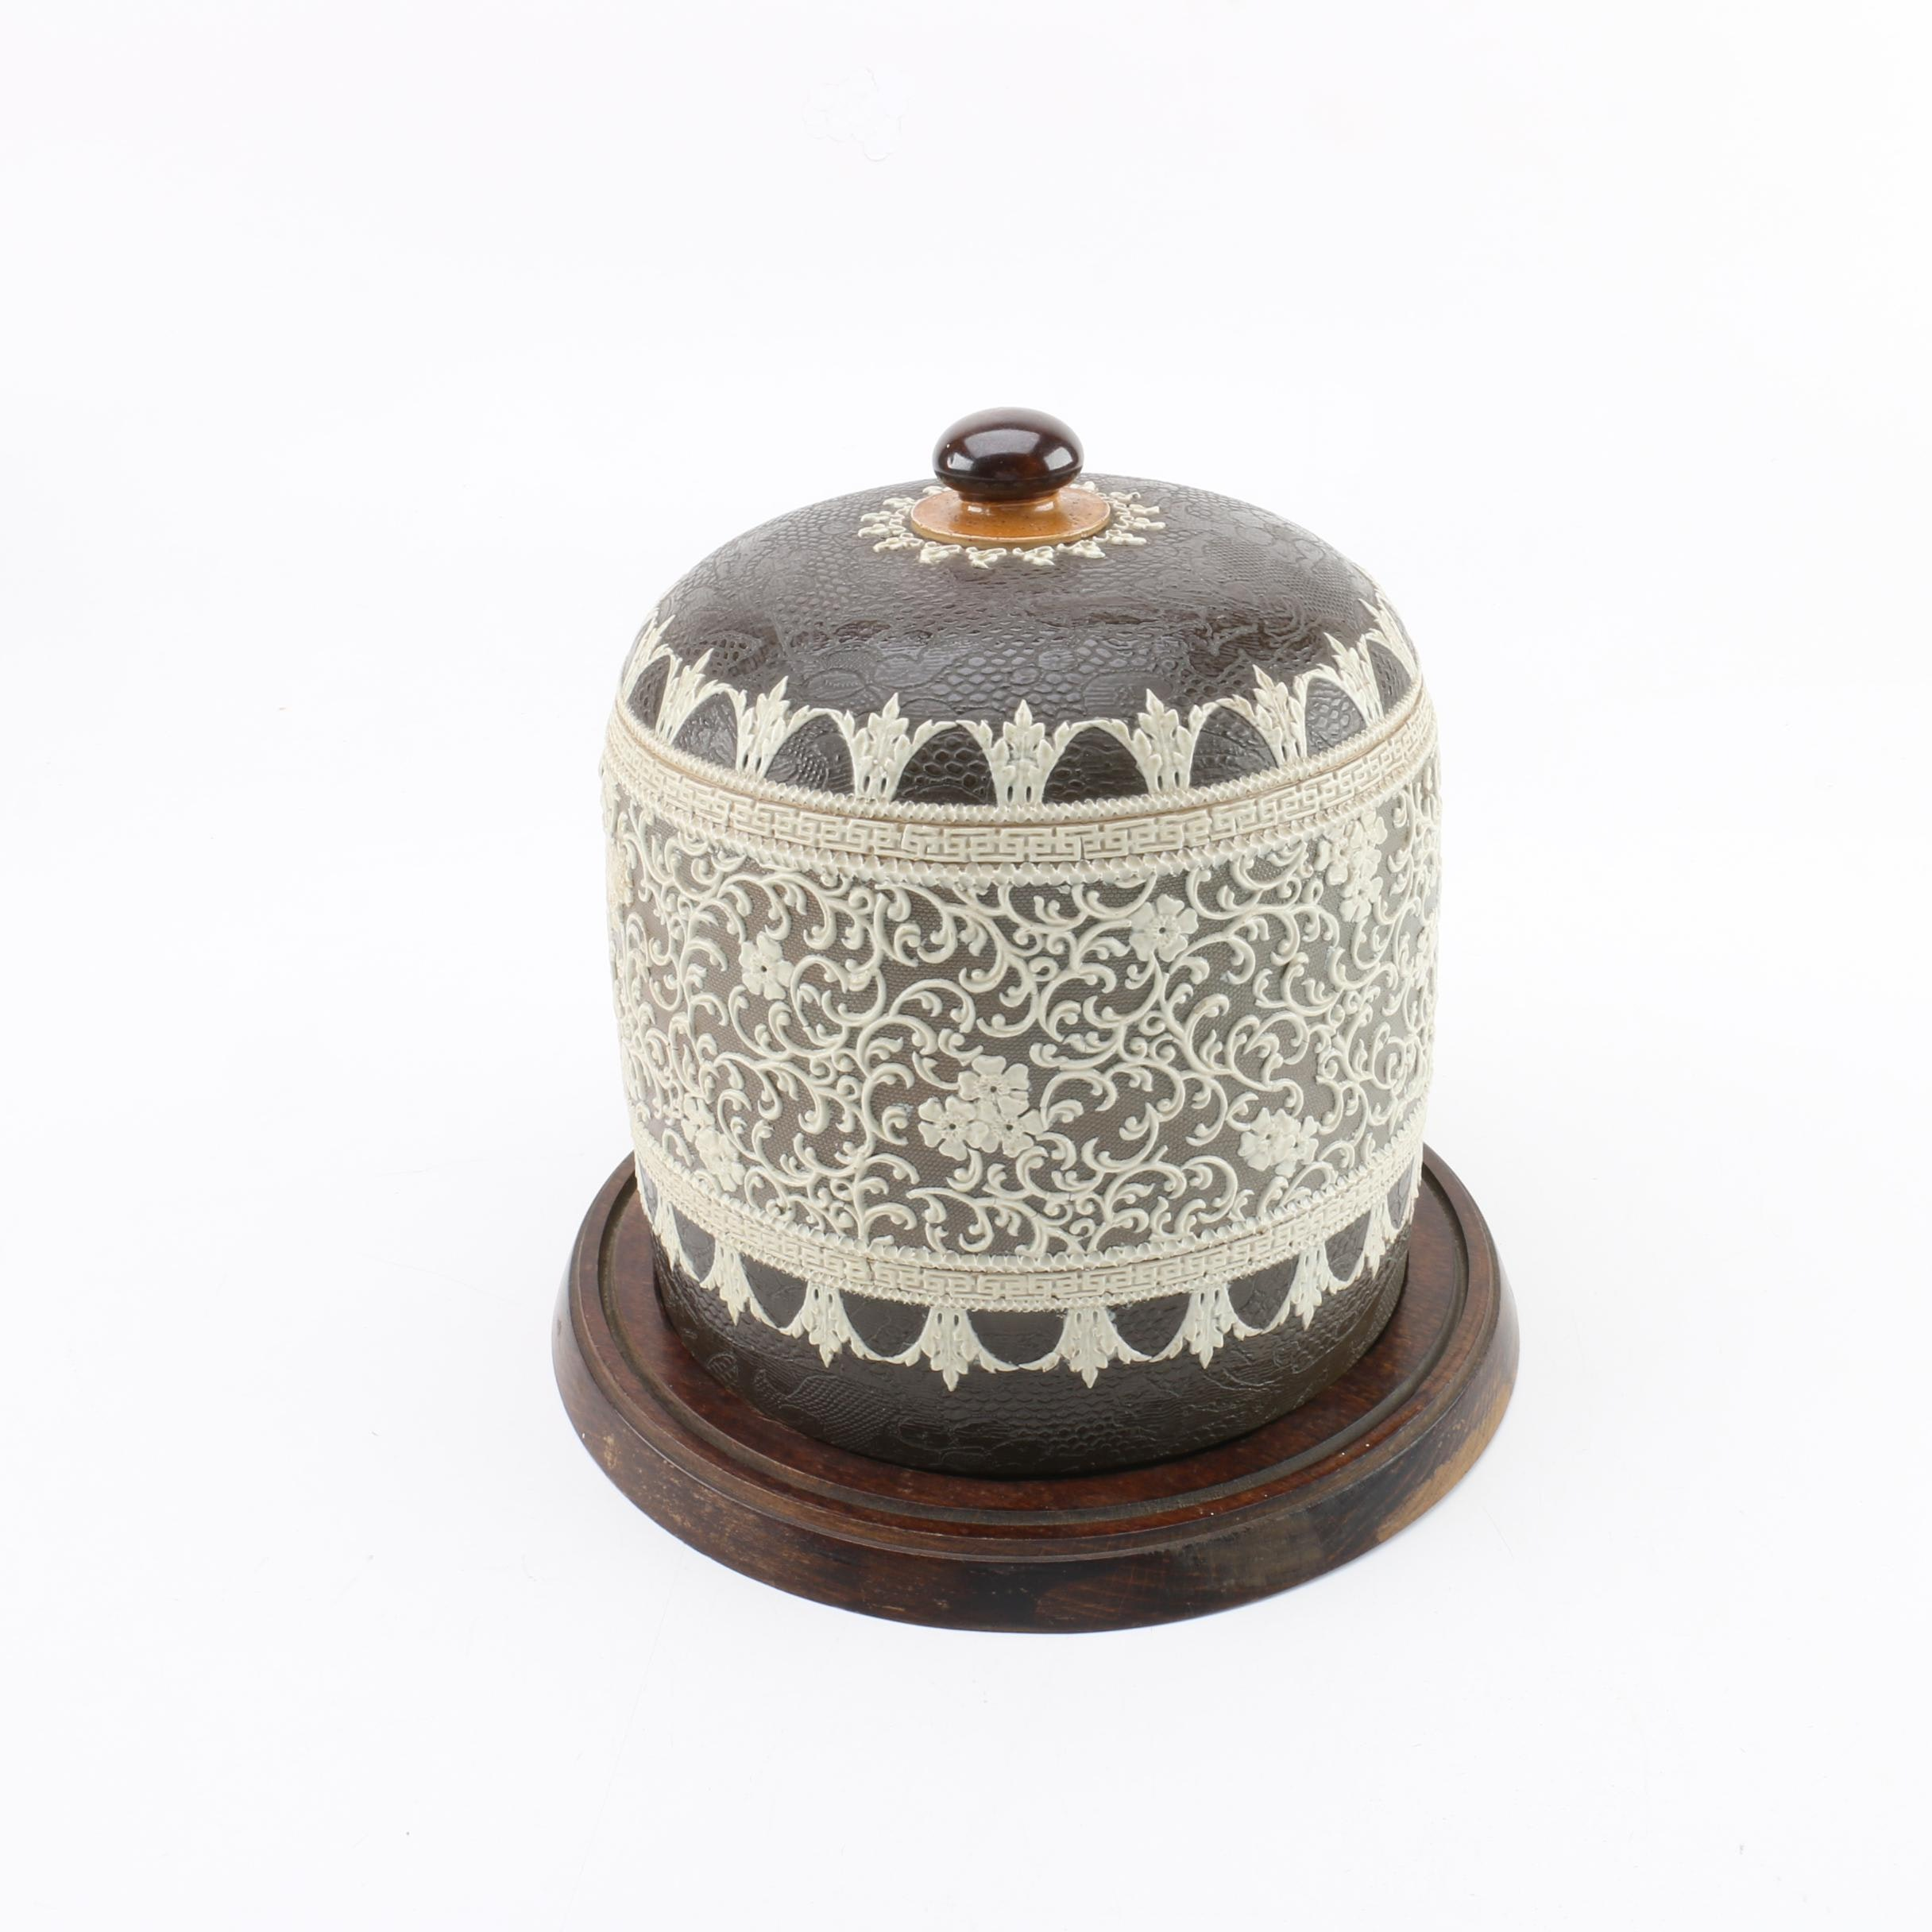 Antique Doulton Lambeth Stilton or Cheese Dome with Wood Base